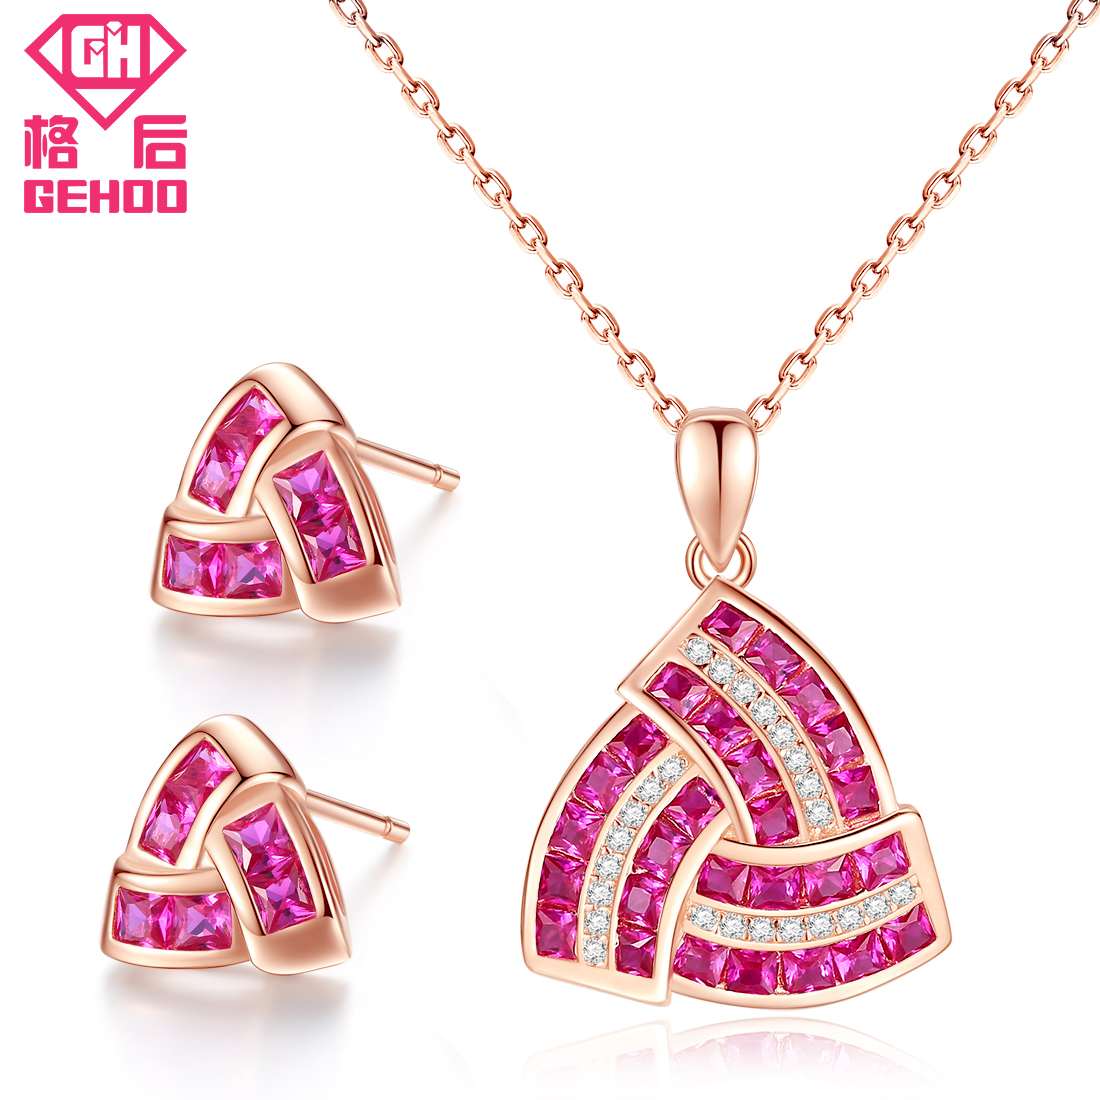 GEHOO 2018 Triangle Geometry Jewelry Set Pandent Necklace & Stud Earrings Pretty Gem Stone 925 Sterling Silver Charm Women Gift gorgeous faux gem triangle necklace for women